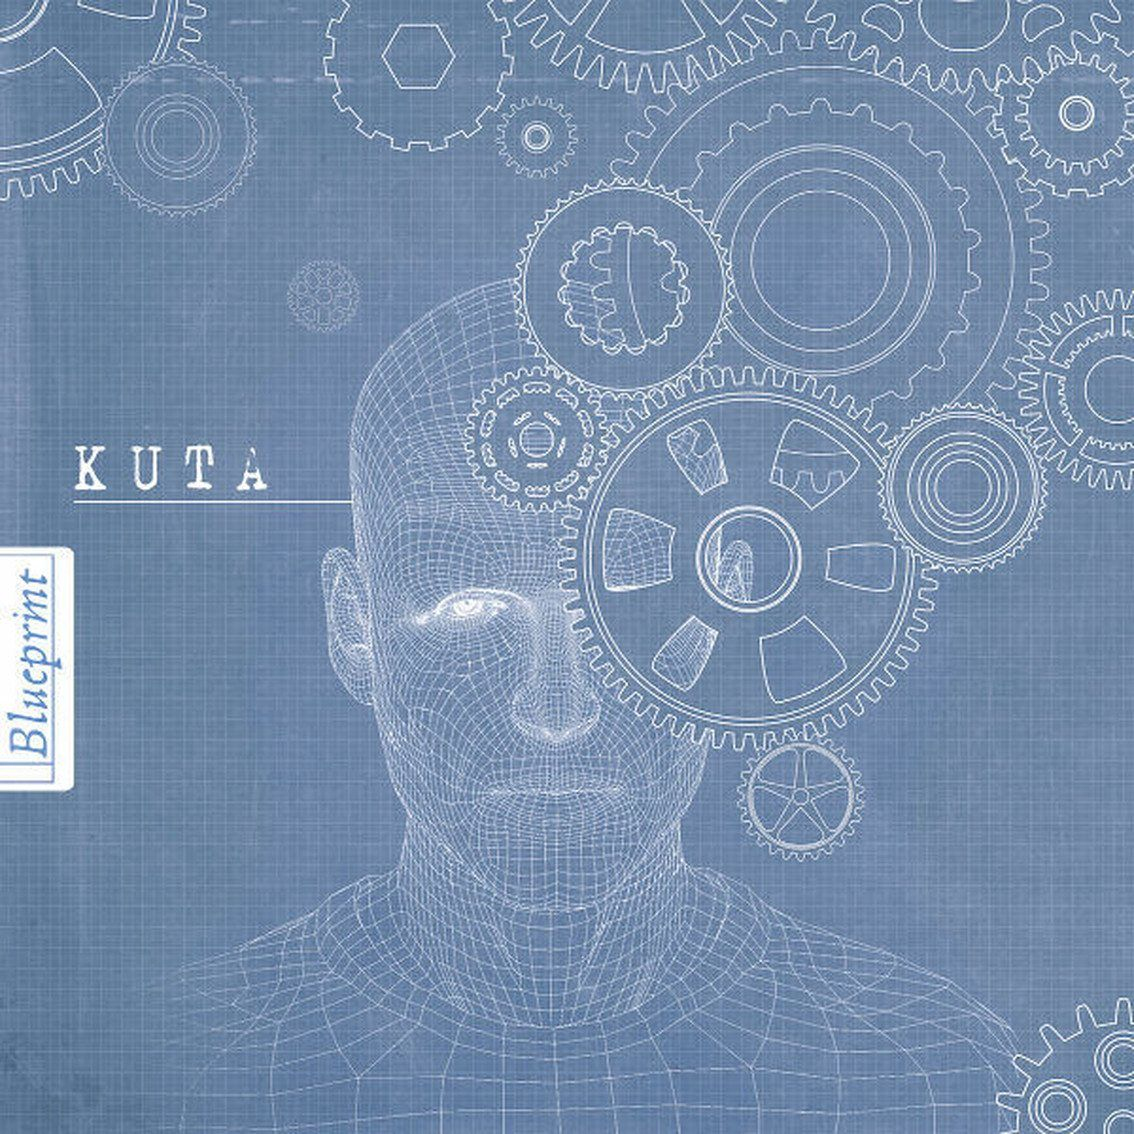 Electropop act Kuta has new album'Blueprint' released on limited vinyl